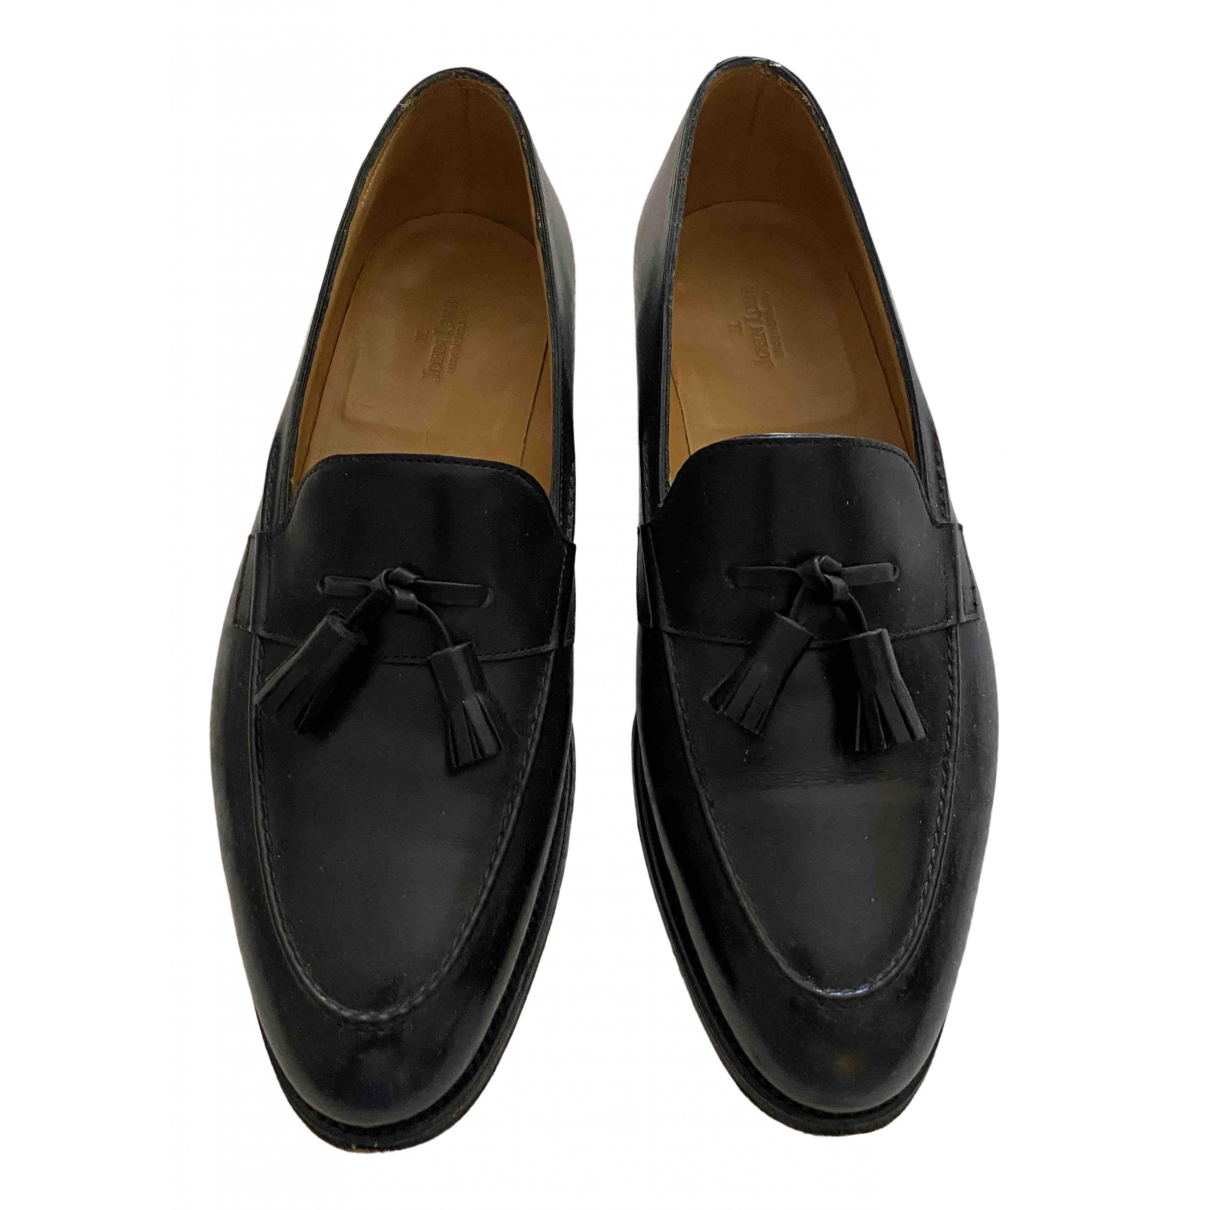 John Lobb \N Black Leather Flats for Men 7 UK